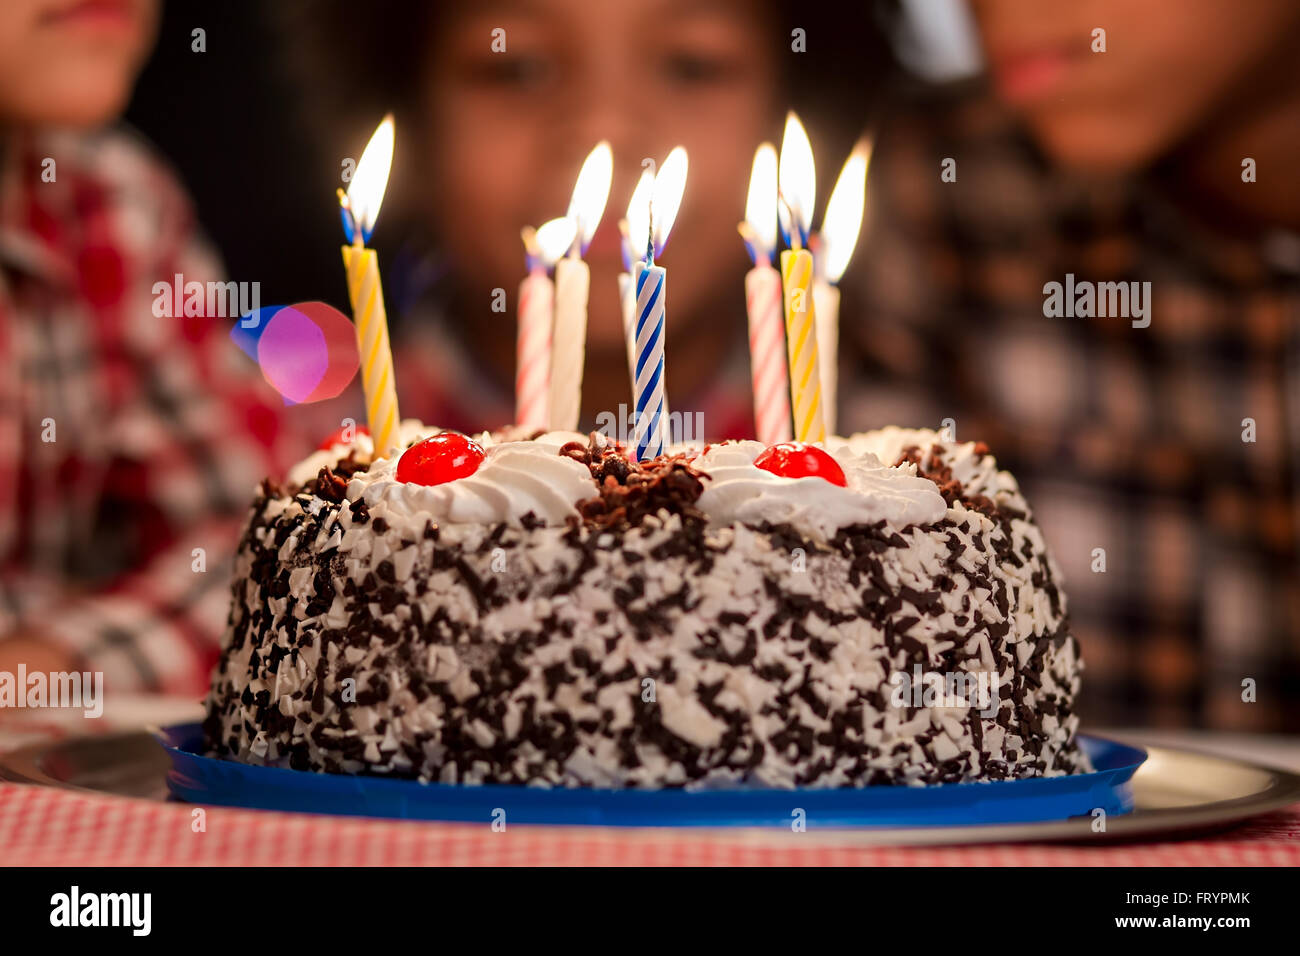 Outstanding Cake In Front Of Kids Small Birthday Cake With Candles Cant Funny Birthday Cards Online Unhofree Goldxyz